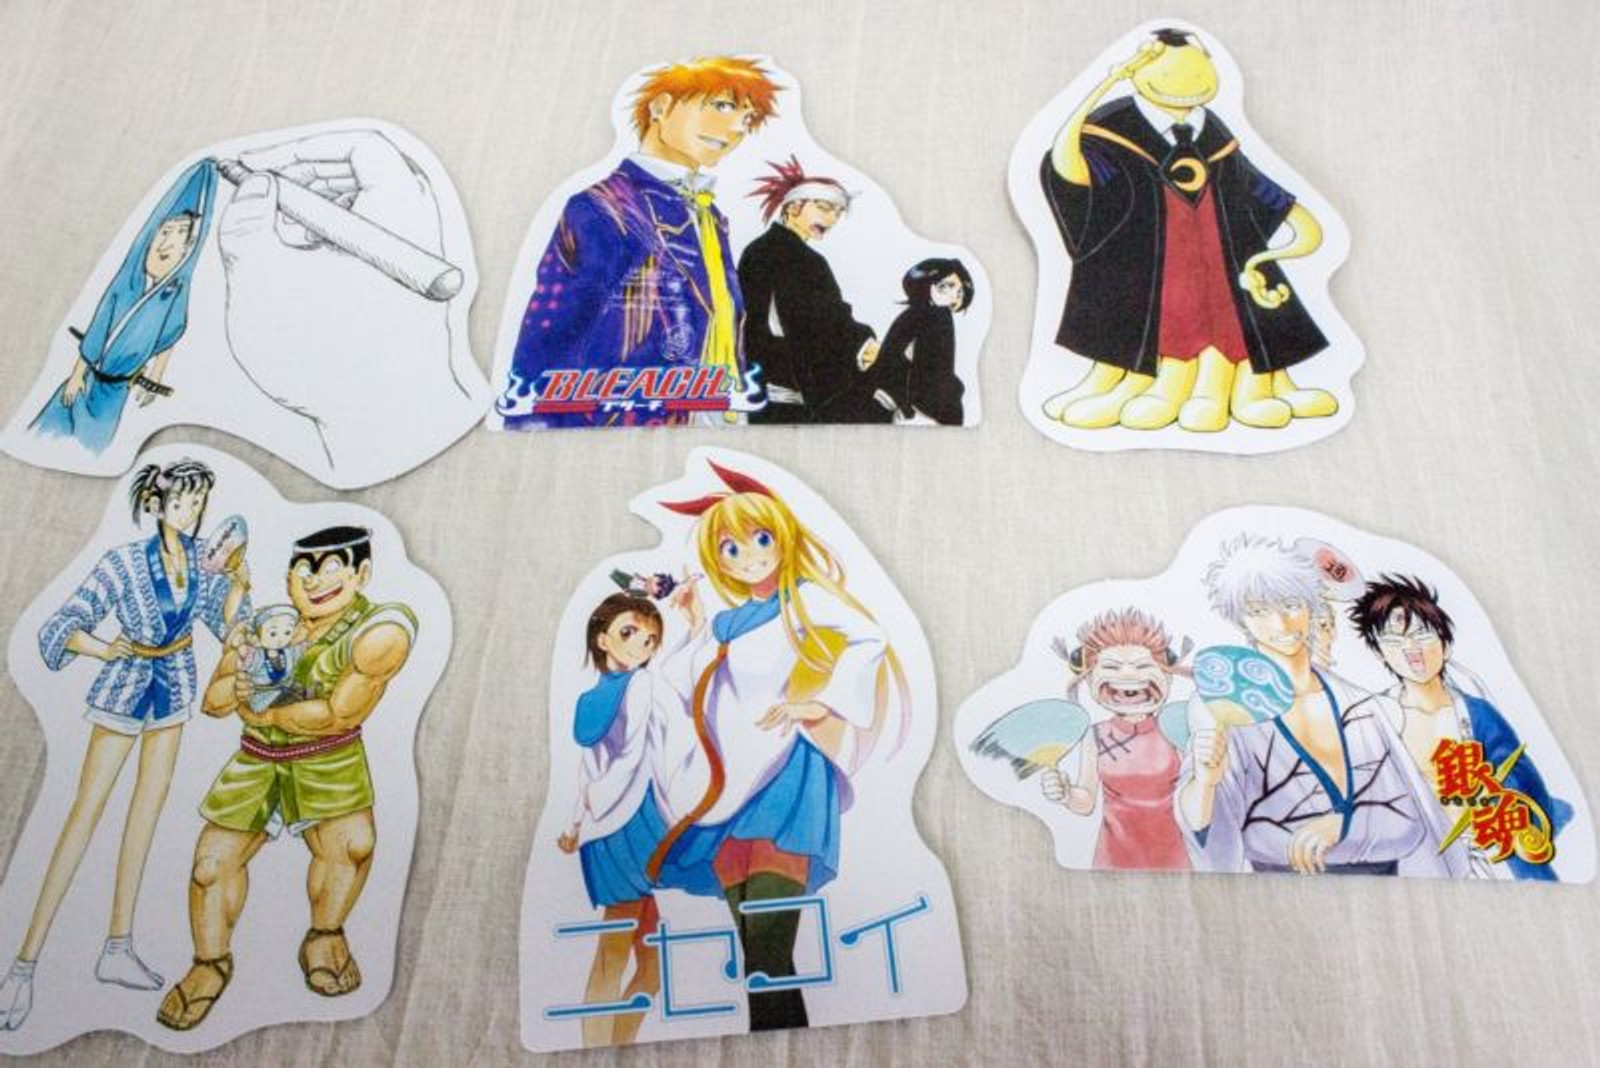 Set of 6 Shonen Jump Message Card / Nisekoi Gintama Bleach JAPAN ANIME MANGA